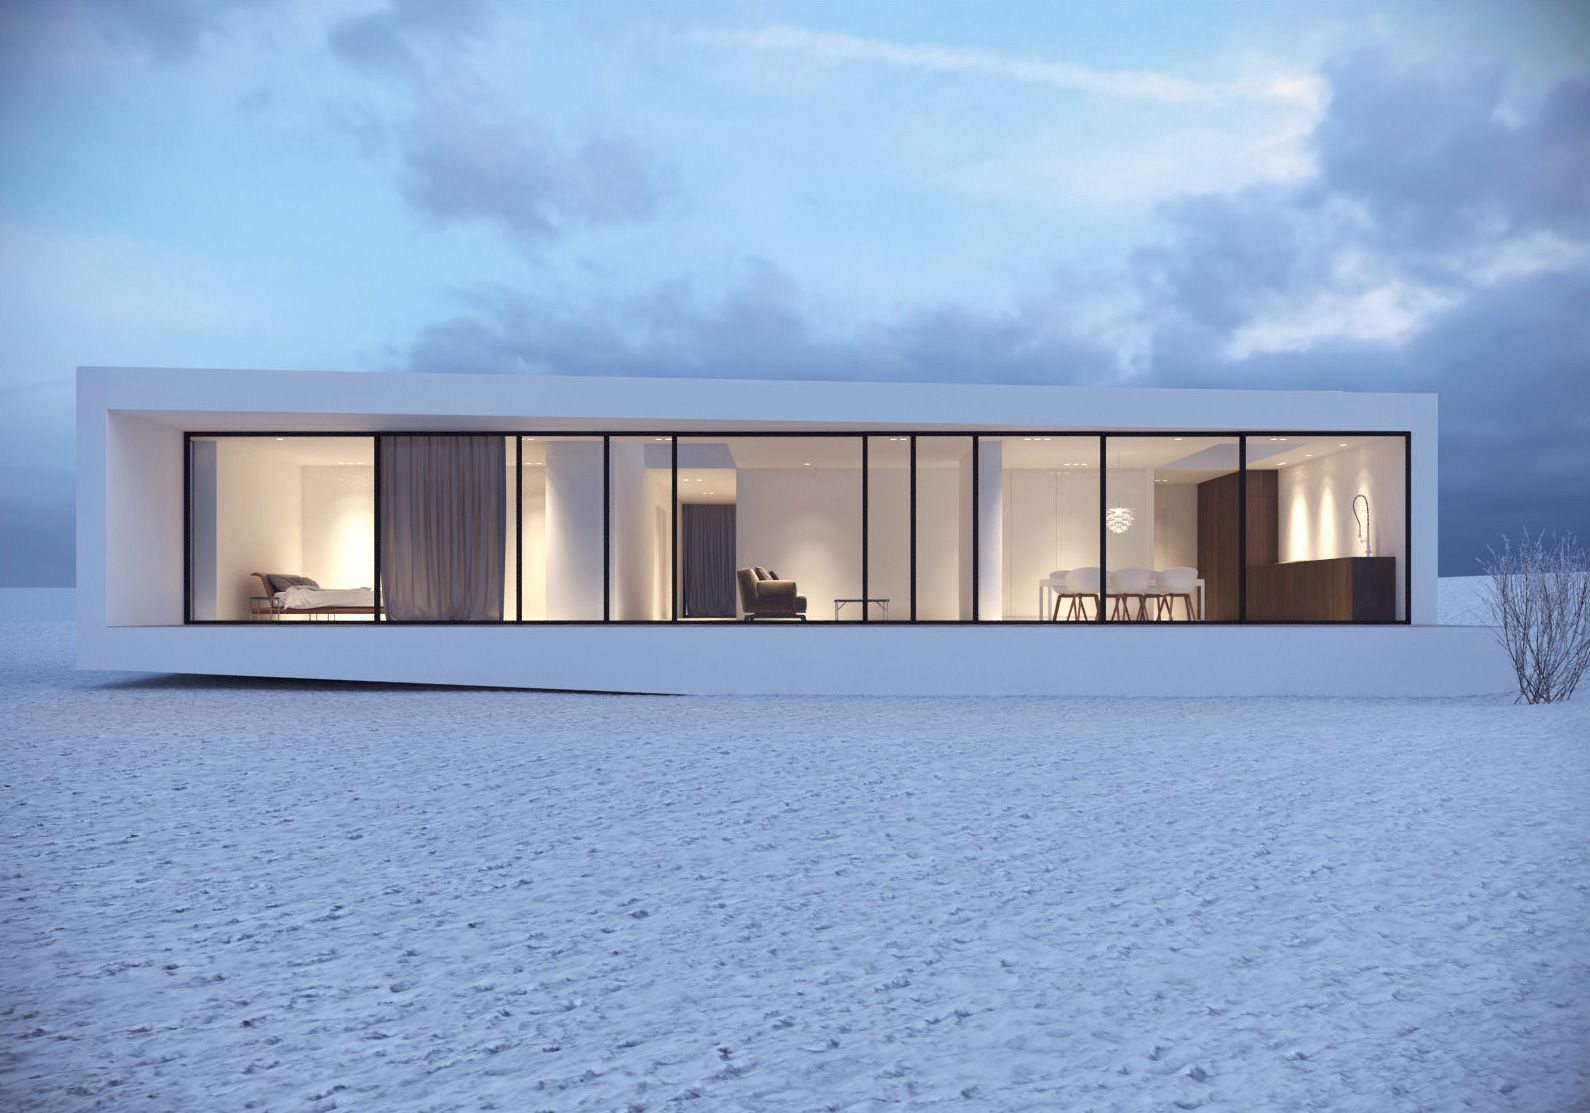 Reykjavik House In Iceland / Moomoo Architects |gives A Good Example Of The  Effective Simplicity Minimalism For A Beach House